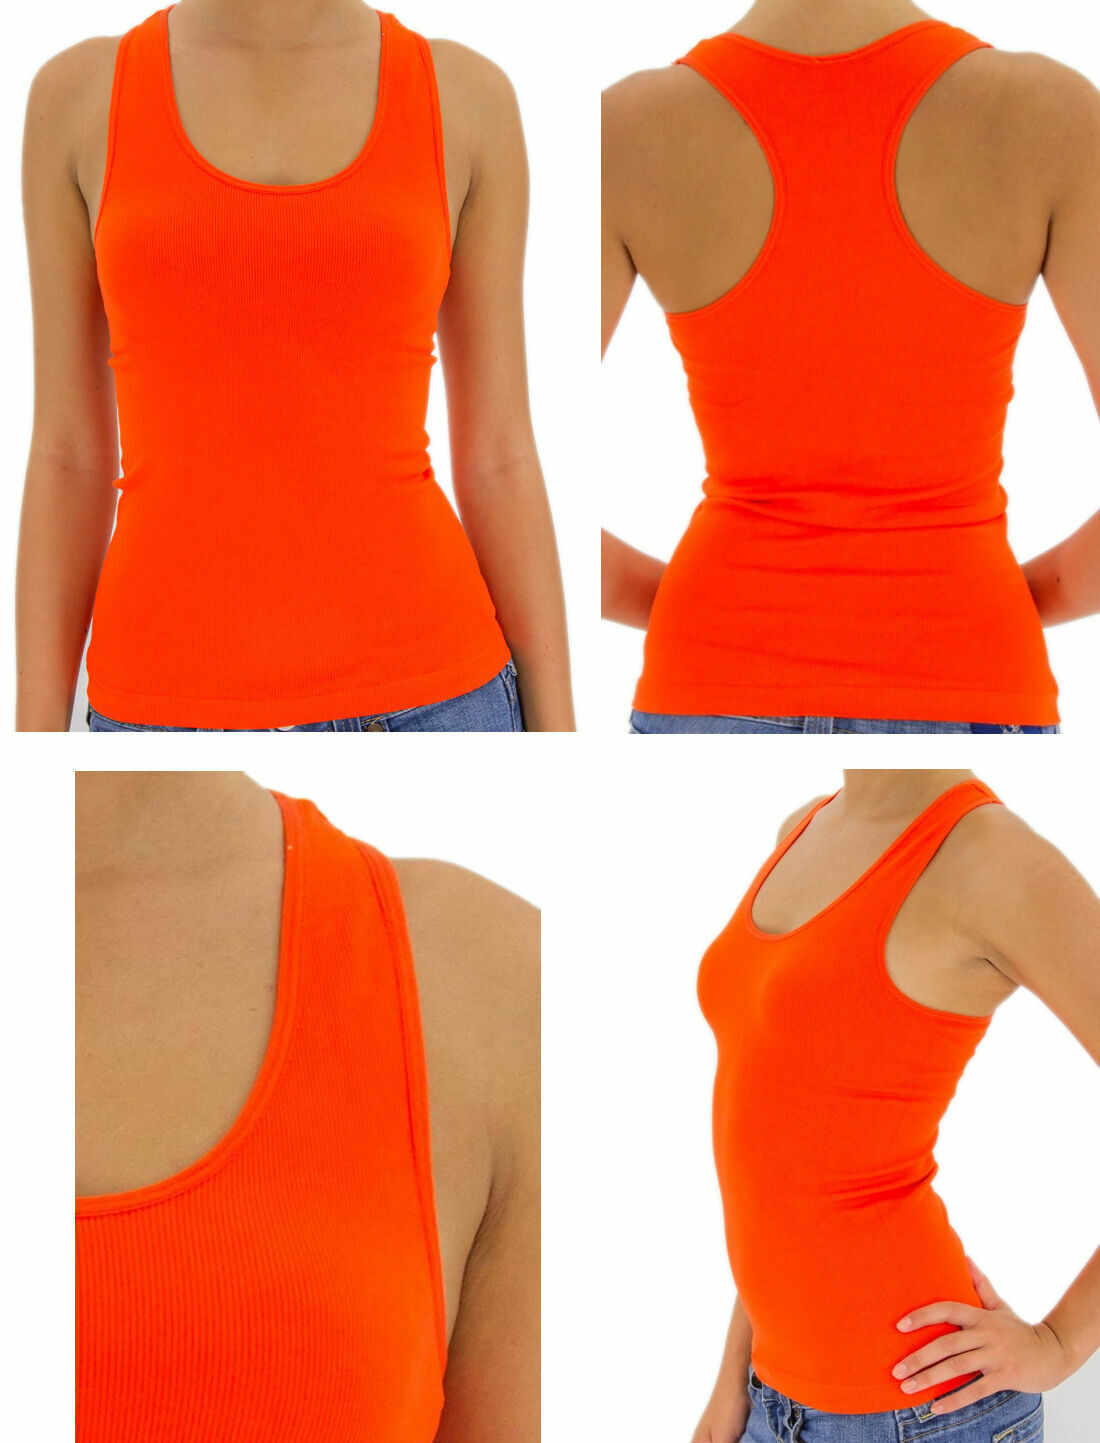 Women Lady Soft Seamless Ribbed Racer Back Stretch Tank Top Yoga Hot Tee Layer Clothing, Shoes & Accessories